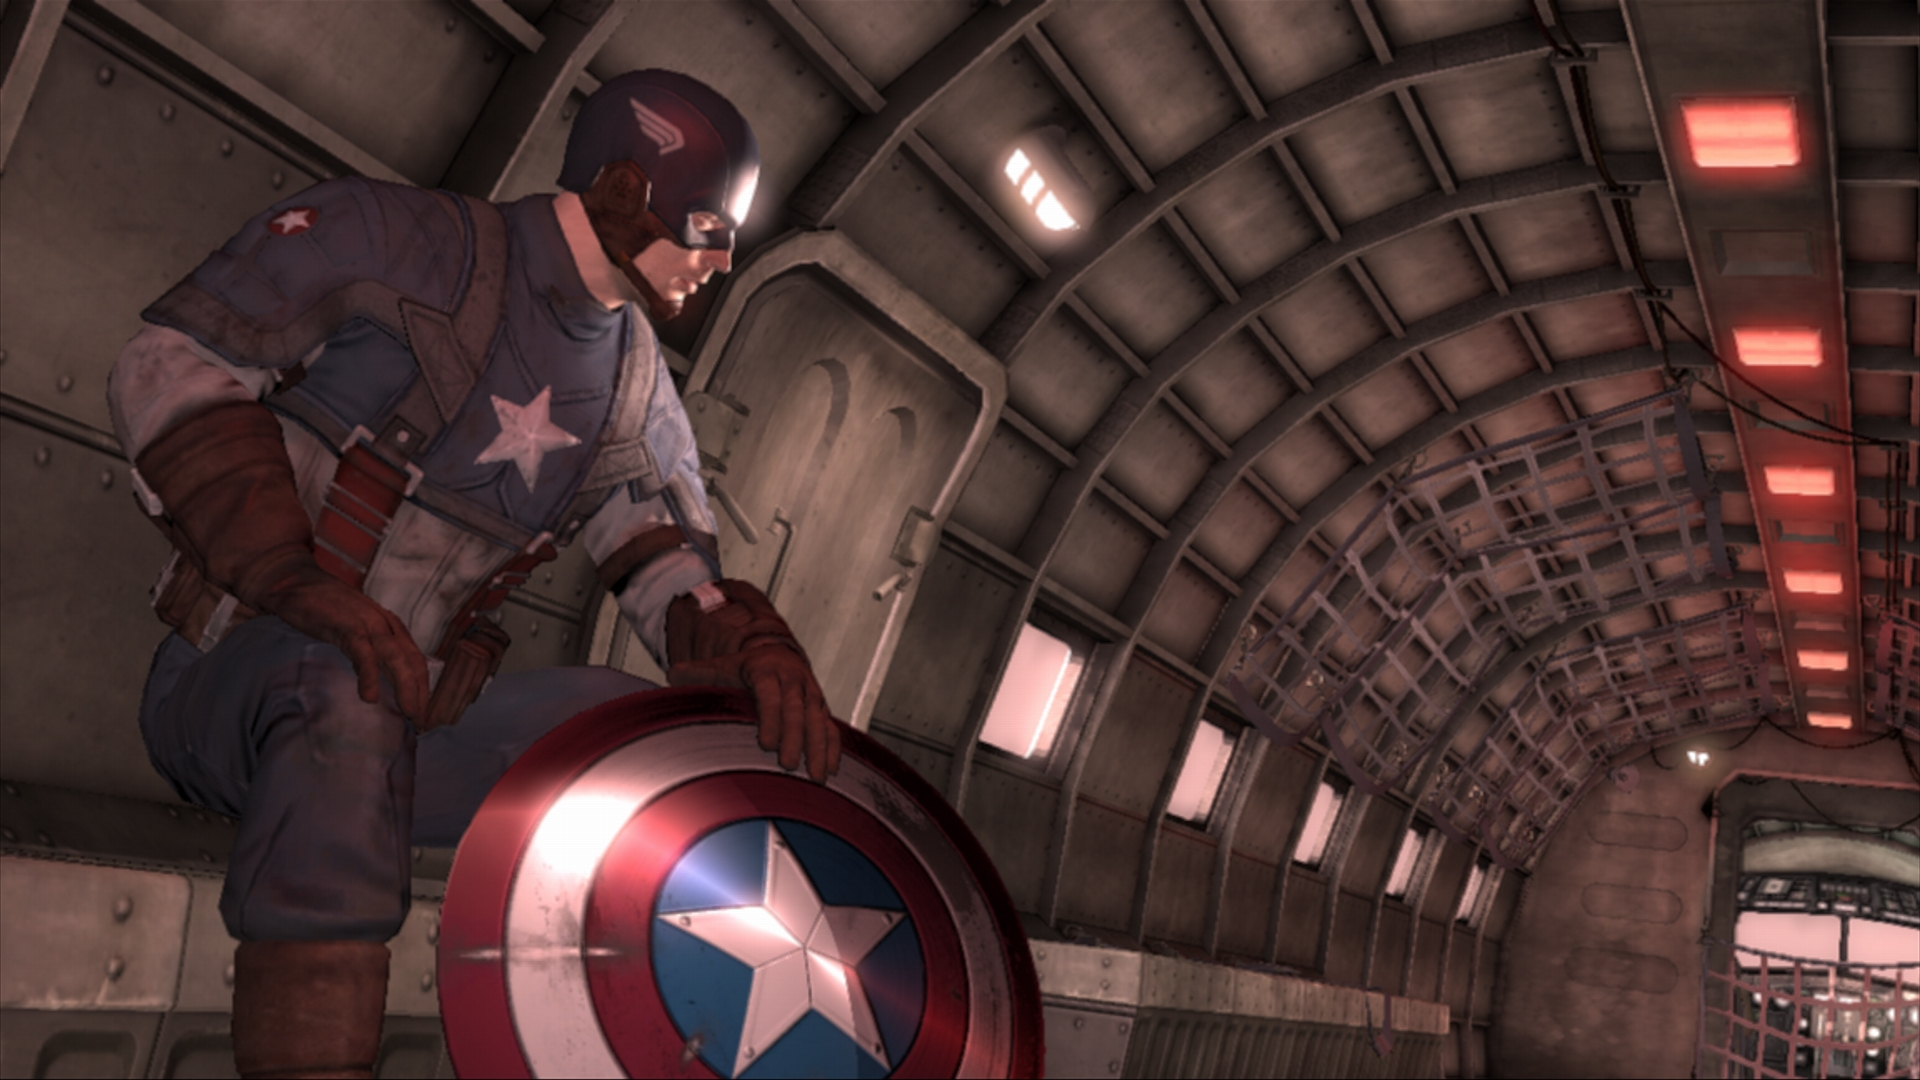 In  Captain America: Super Soldier , you step into Cap's boots during the events of World War II as depicted in  The First Avenger  film, and the story serves as an adventure Cap and his team could've gone on during their days together fighting in the war.